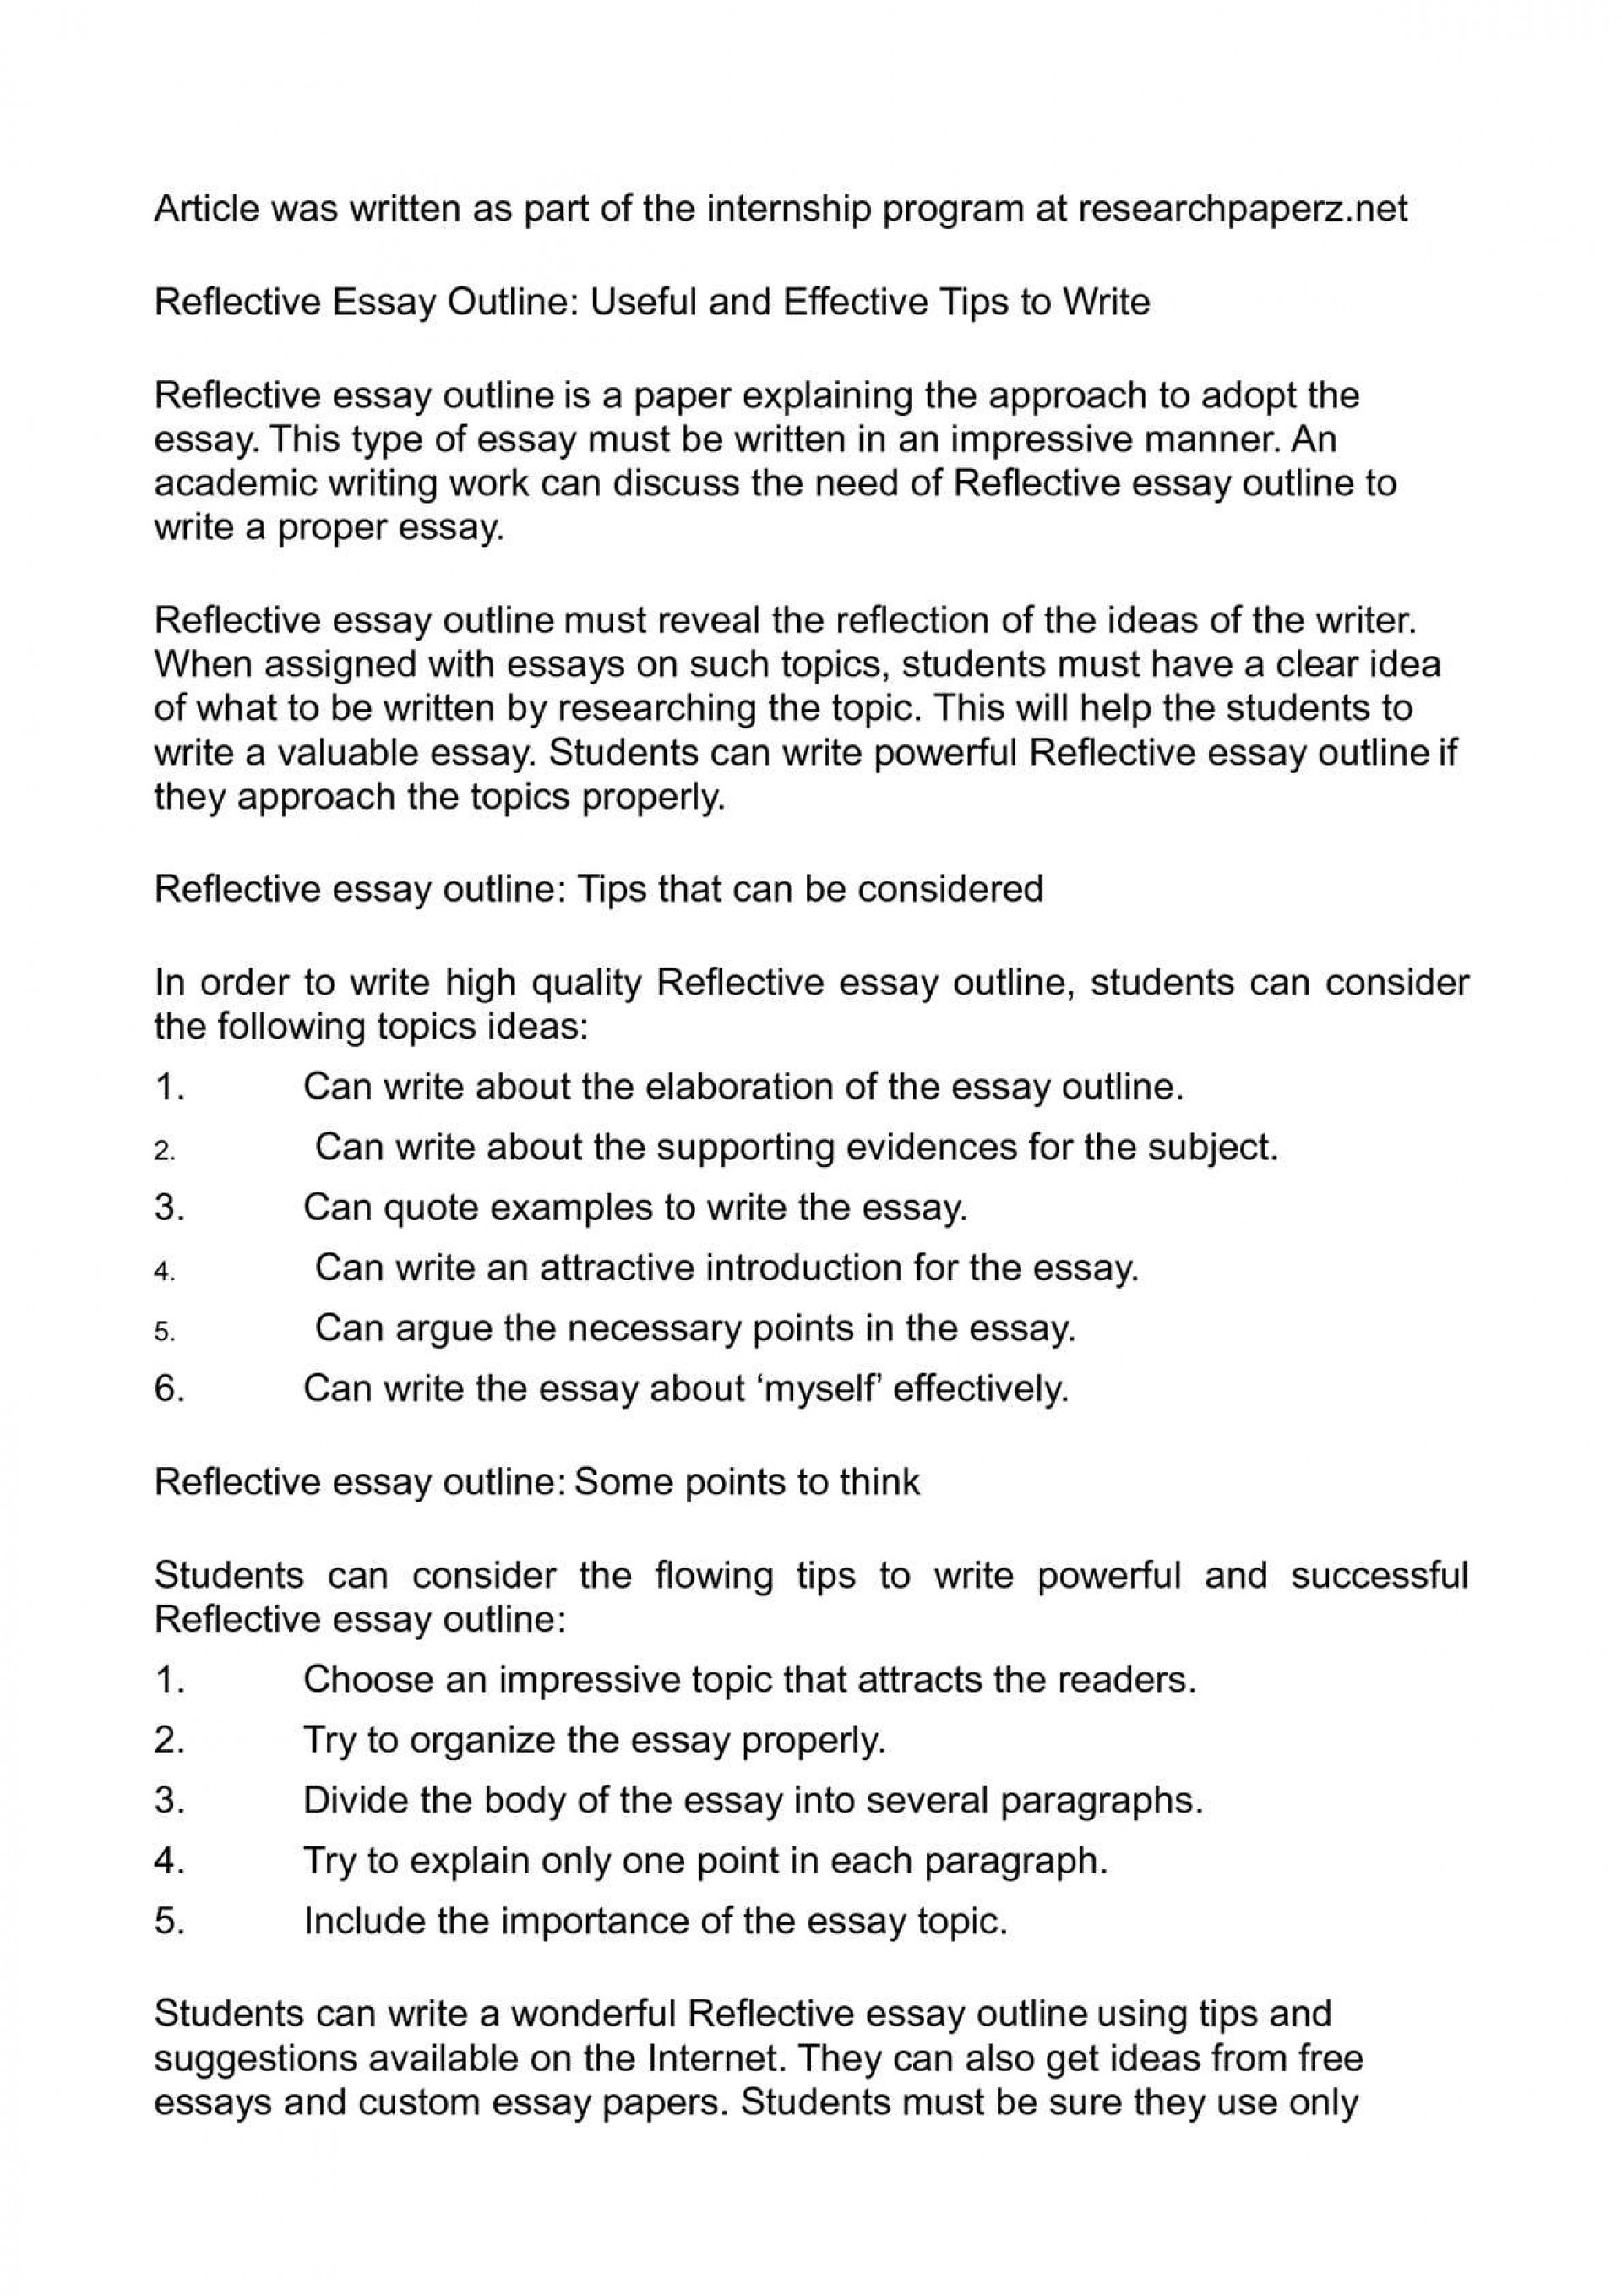 001 Reflective Essay Outline Useful And Effective Tips To Wri On Critical Reading Writing Magnificent Narrative Reflection Paper Layout Course 1920